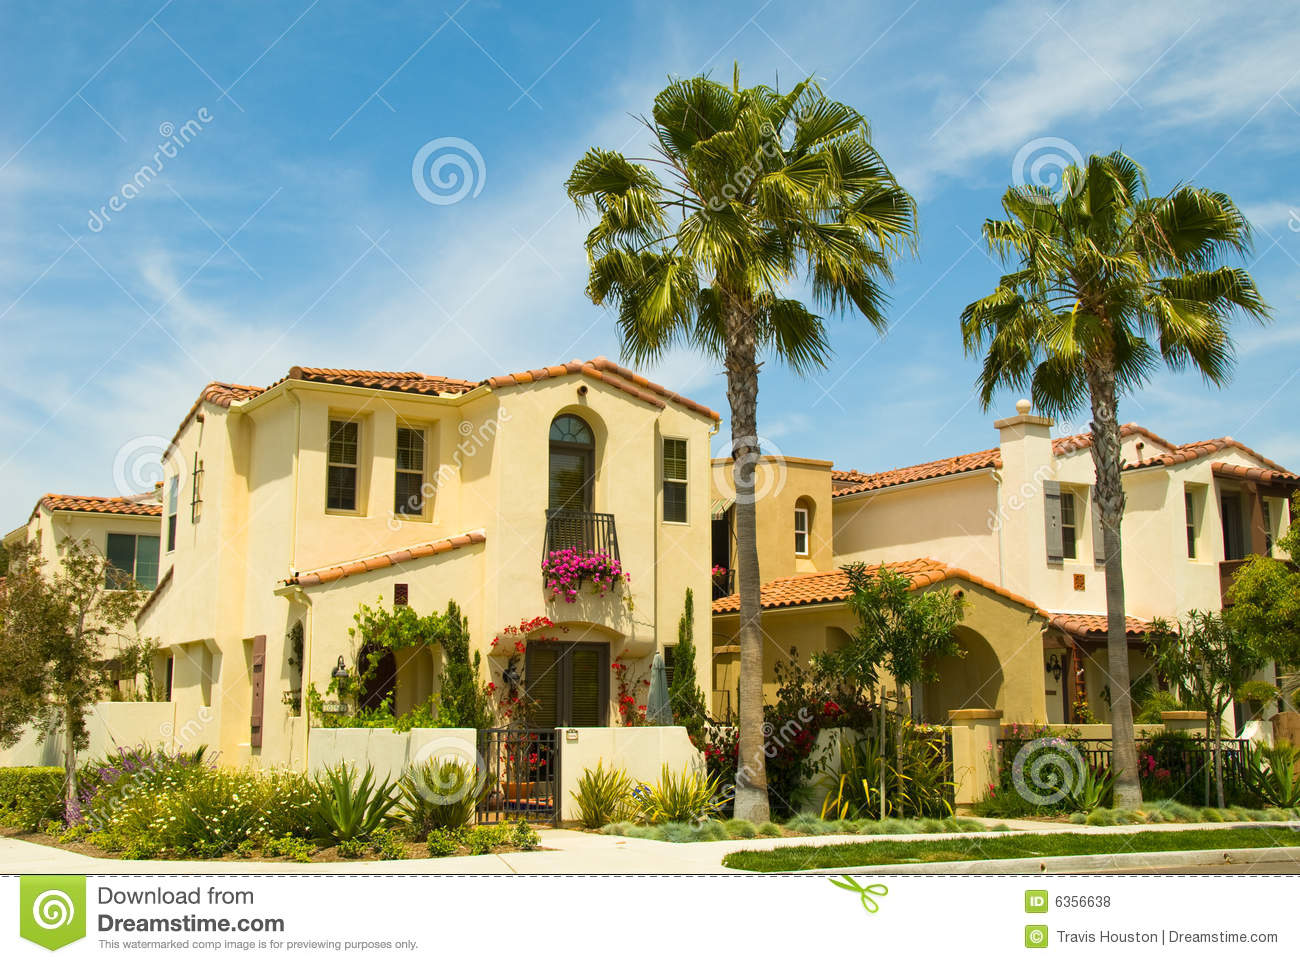 Spanish style houses in a master planned community royalty for Spanish style homes for sale